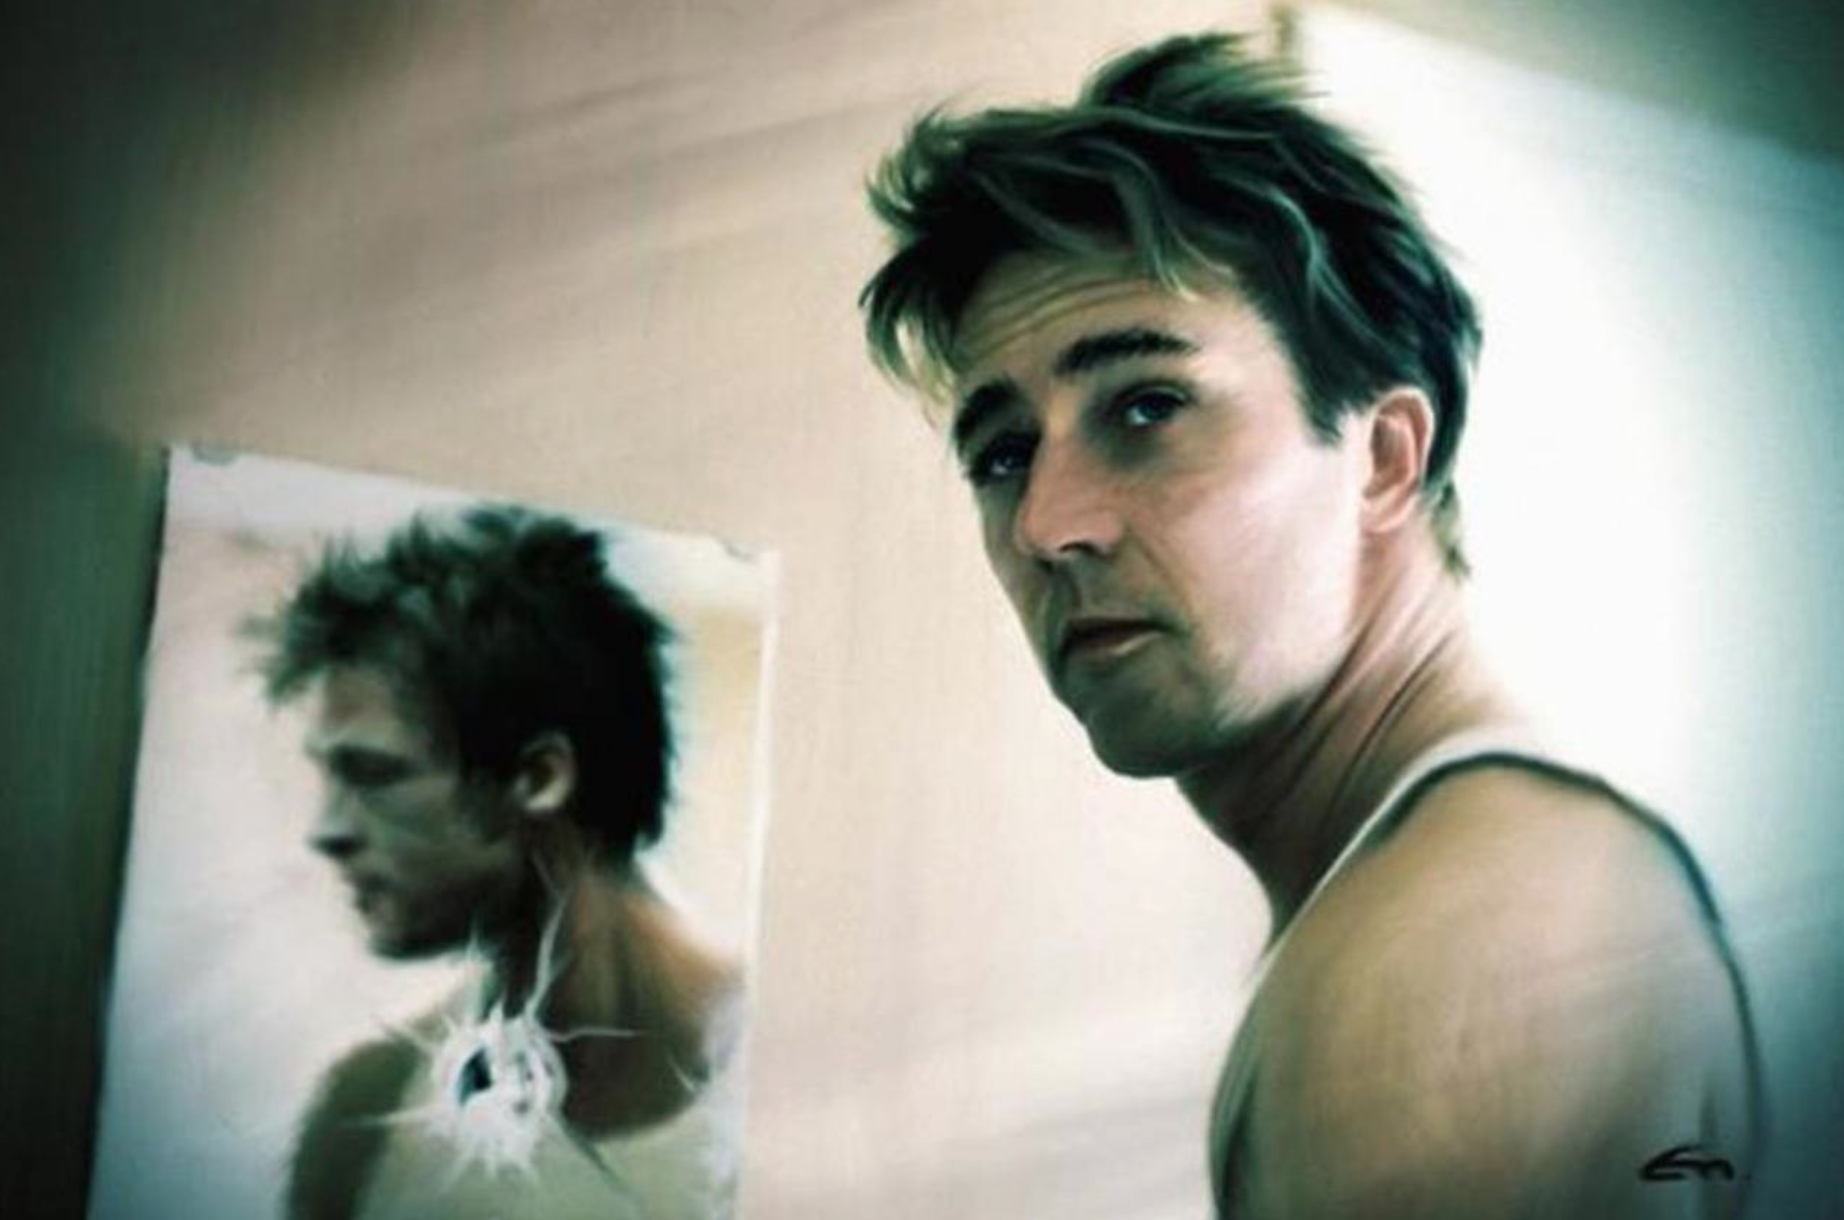 Instagramming a photo of Tyler Durden doesn't make you Tyler Durden.